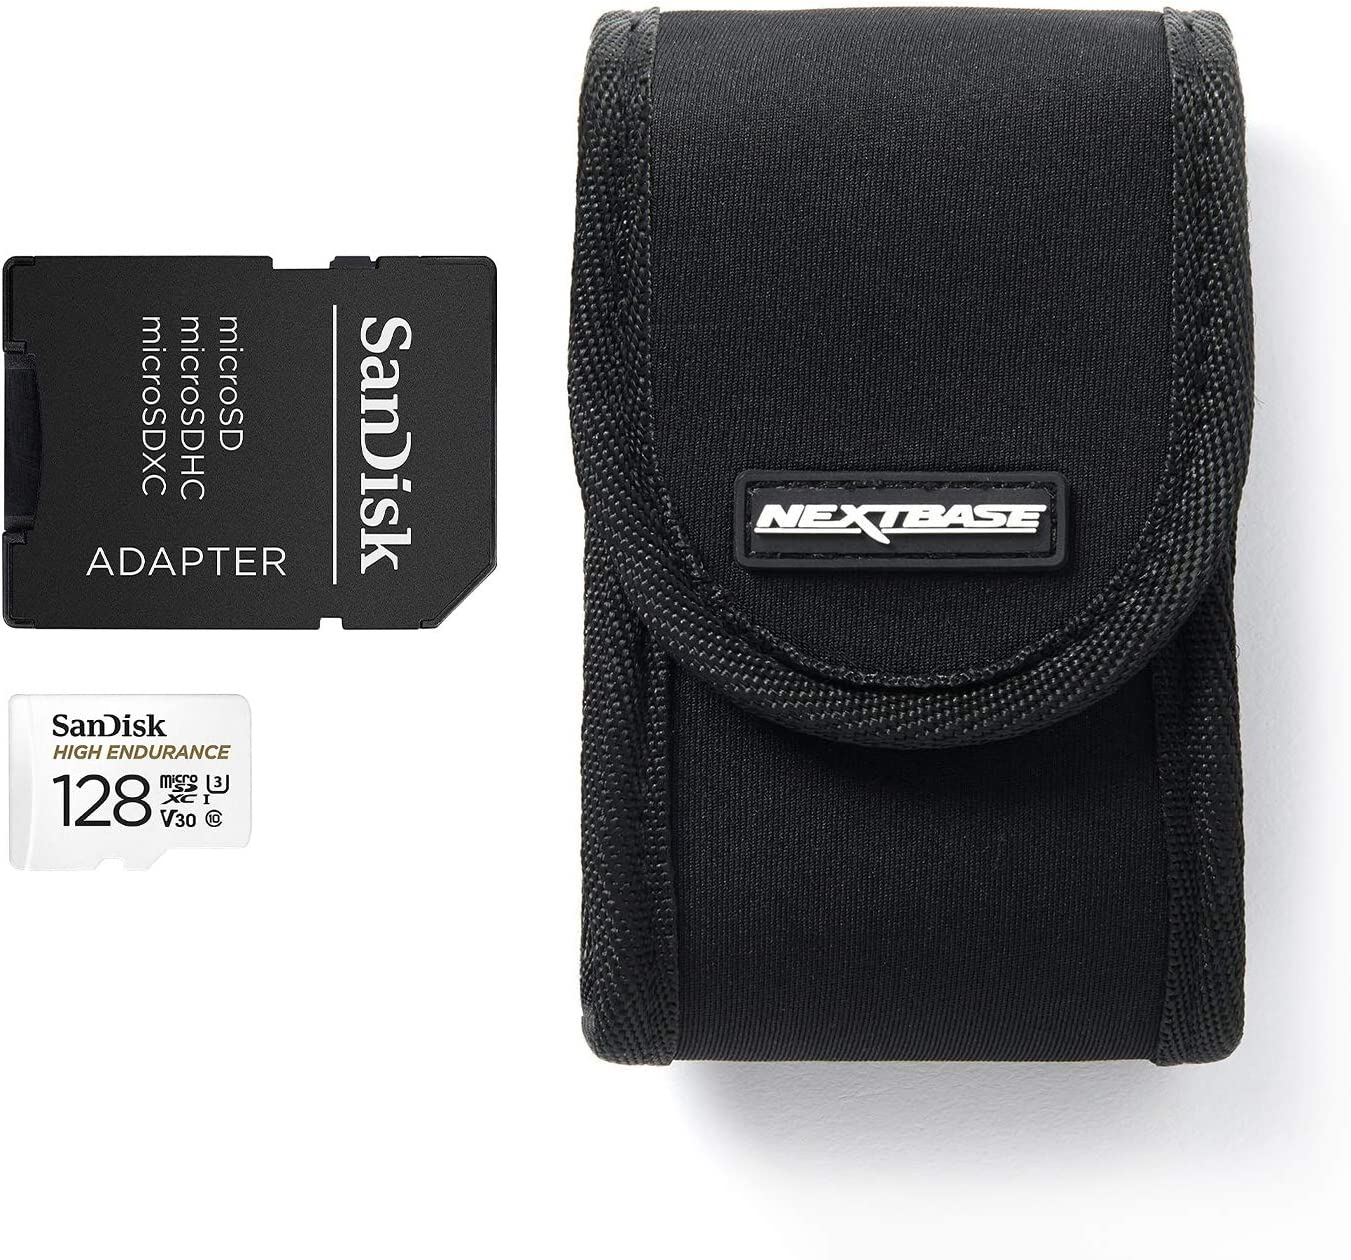 Adaptor Nextbase Series 2 Dash Cam Carry Case a Protective Neoprene Case for 122 222 322GW 422GW and 522GW In-Car Dash Cameras with Sandisk 128GB High Endurance Micro SD HC Memory Card